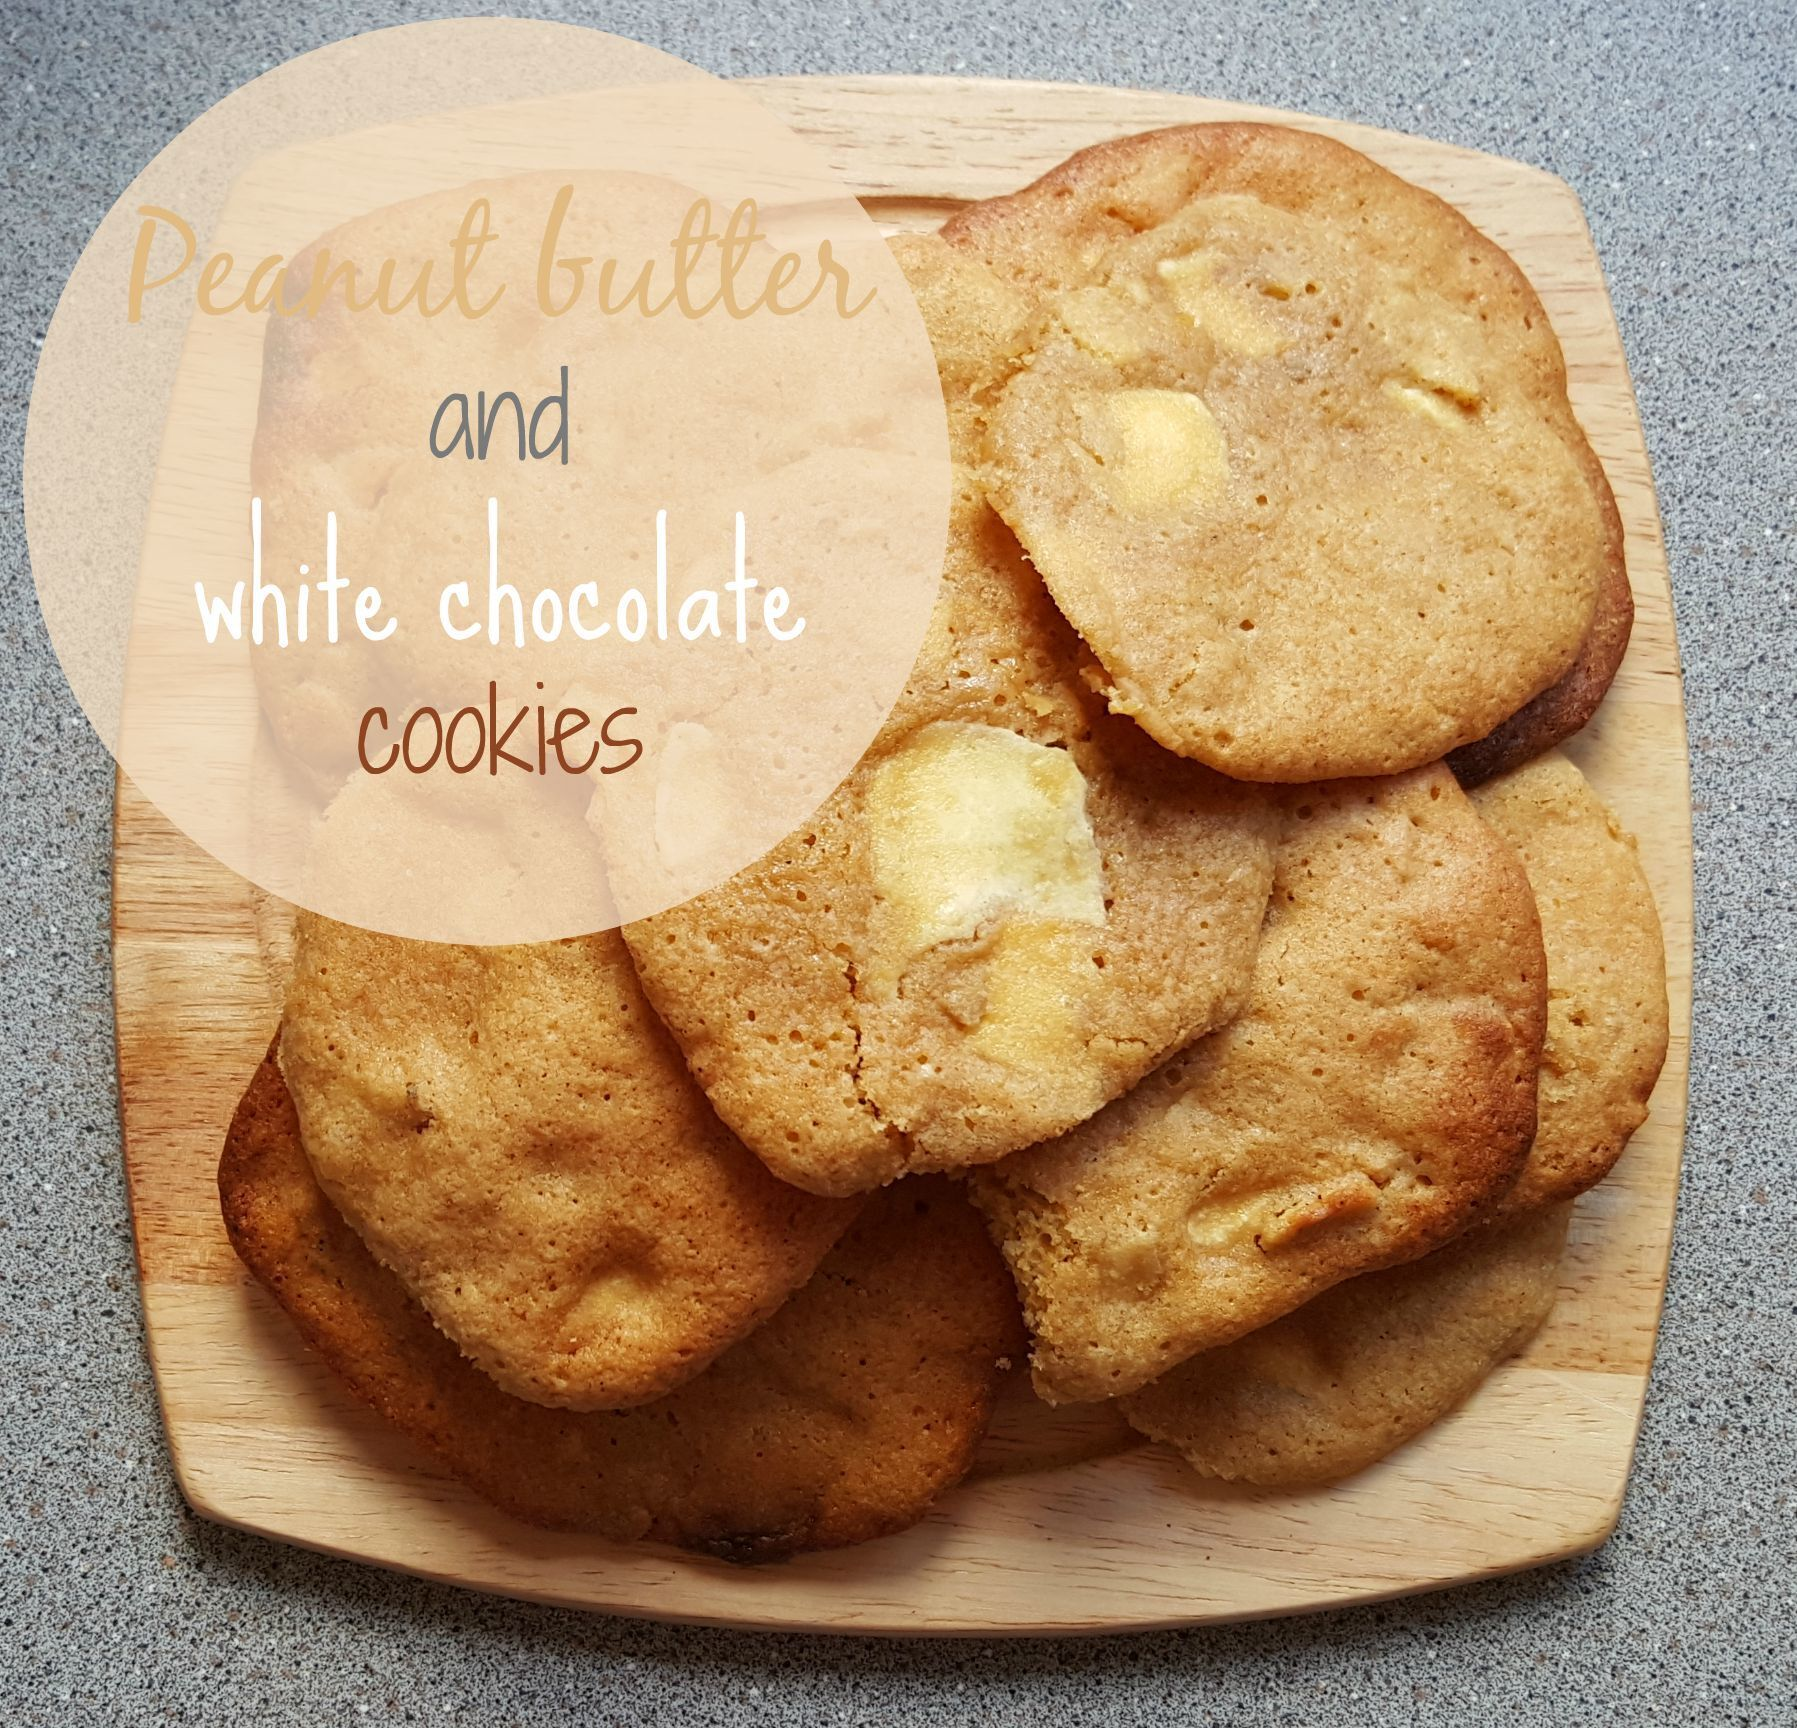 Recipe - Peanut butter & white chocolate cookies #GBBOBloggers2015